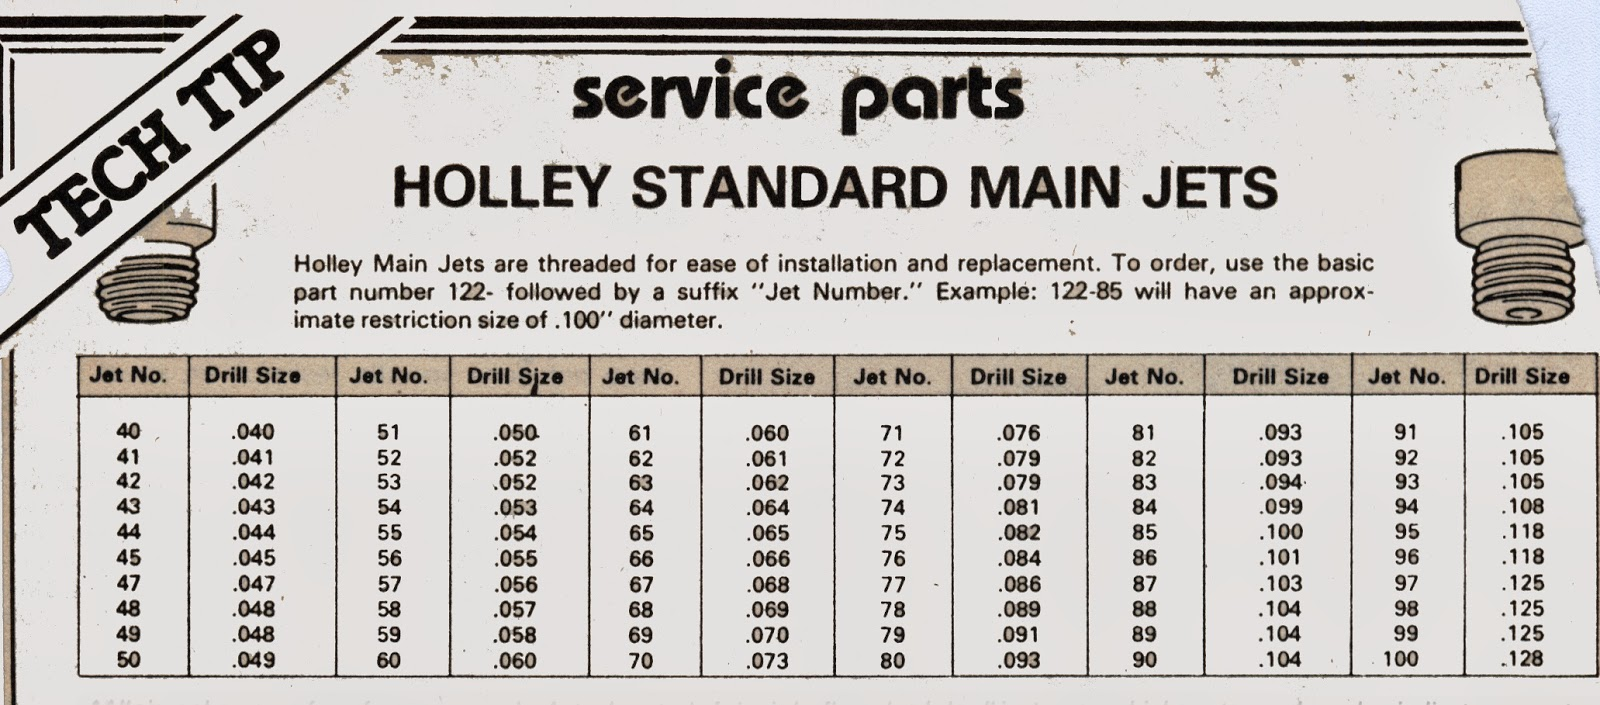 Tech Series Holley Main Jet Size Chart Drill Air Bleed List 1960 Pontiac Catalina Wiring Diagrams